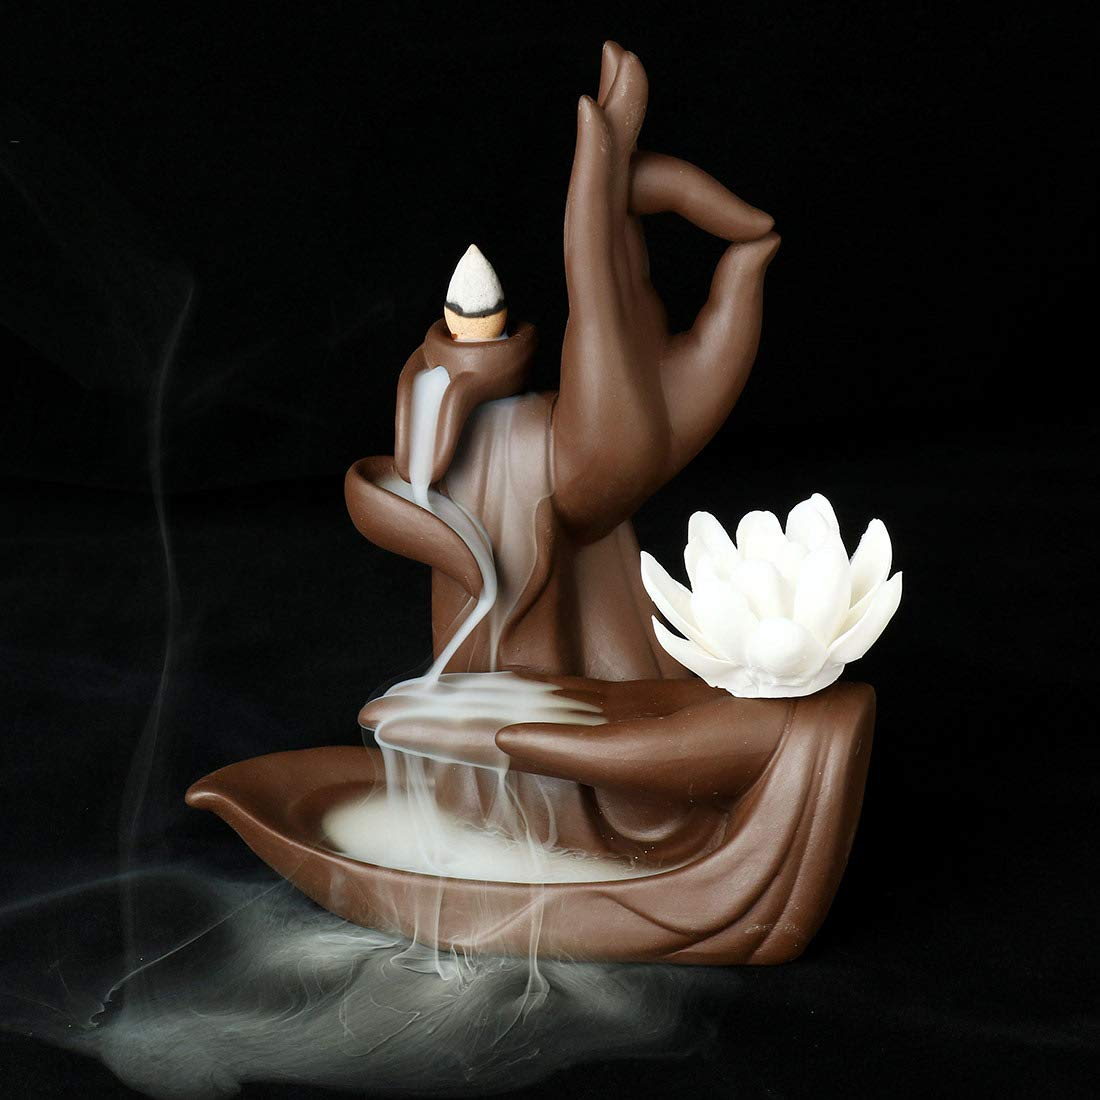 OUYEE Lotus Flower/Monk Backflow Incense Burner, Large Handmade Ceramic Backflow Cone Sticks Incense Holder Home Decor Craftwork Figurine with 10 pcs Incense Cones (A) by YYW (Image #3)